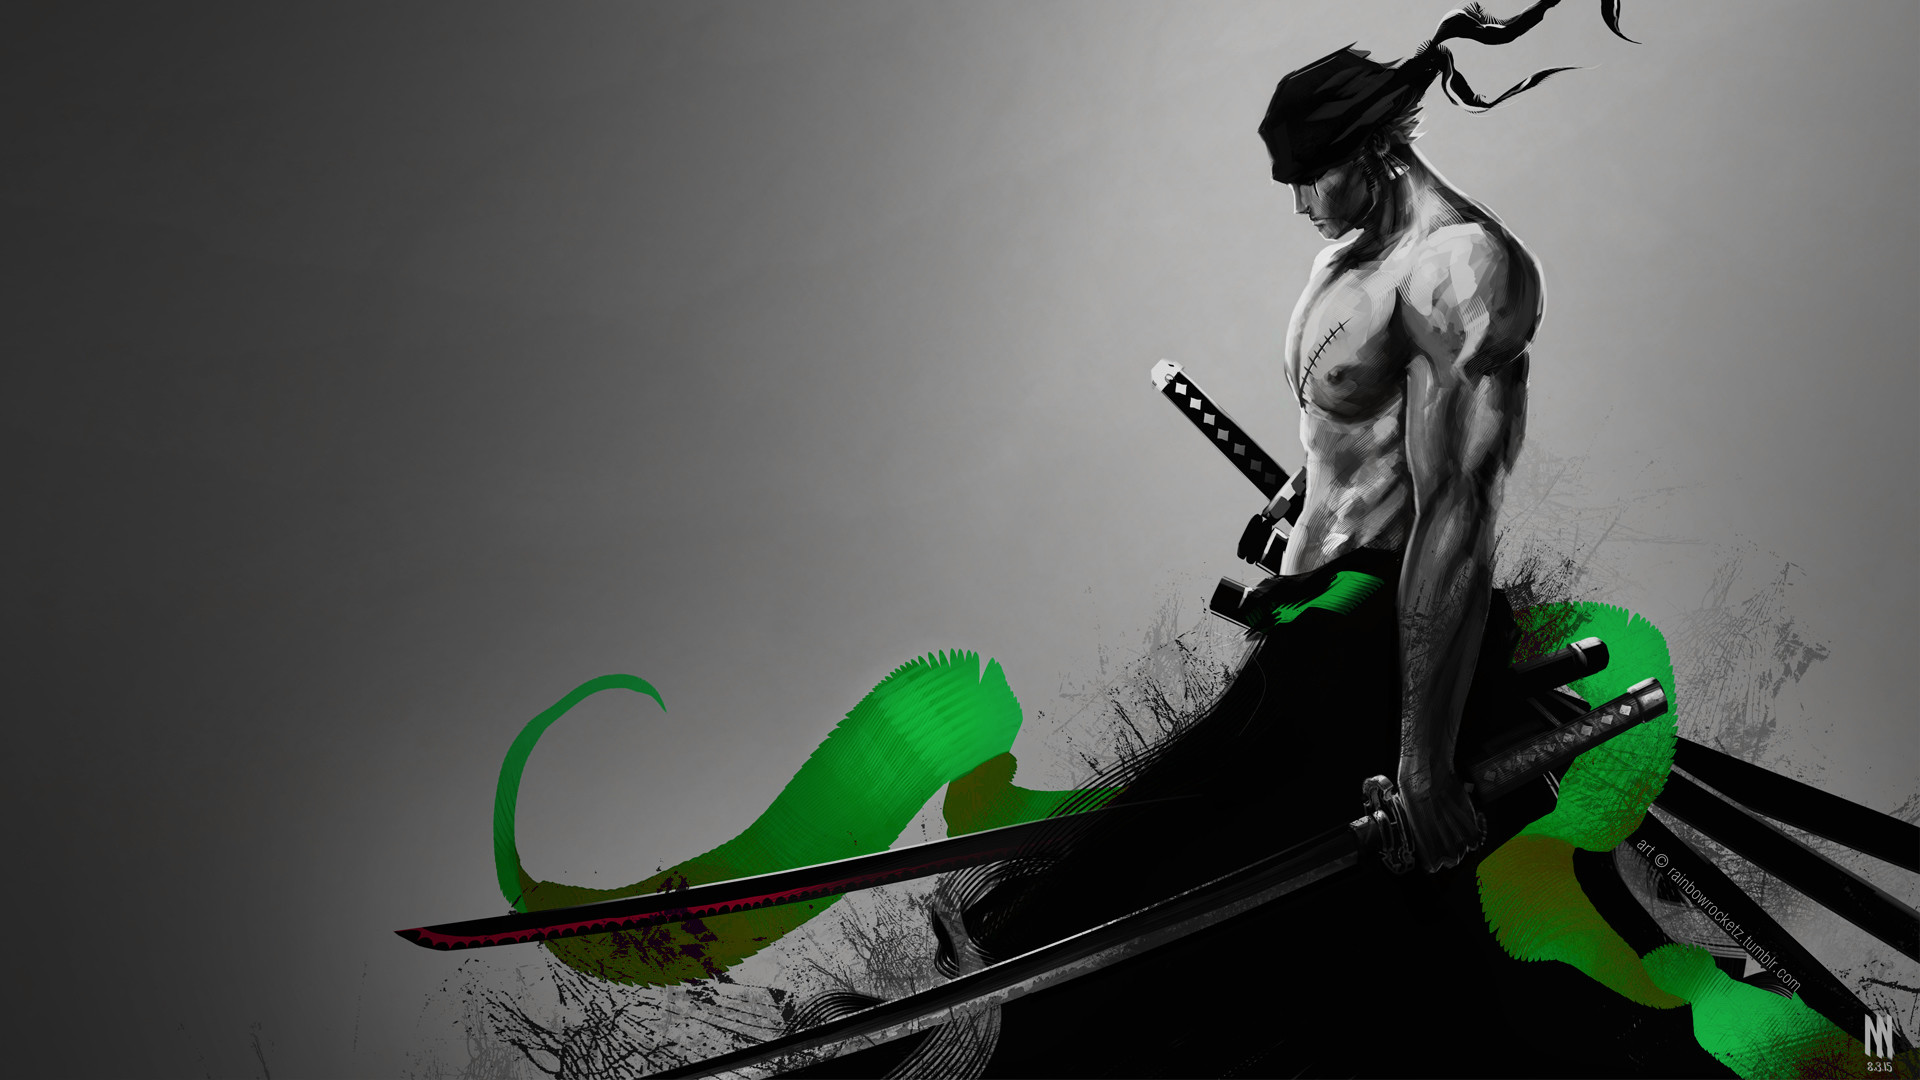 Google Wallpaper Hd Zoro One Piece Wallpaper 65 Images